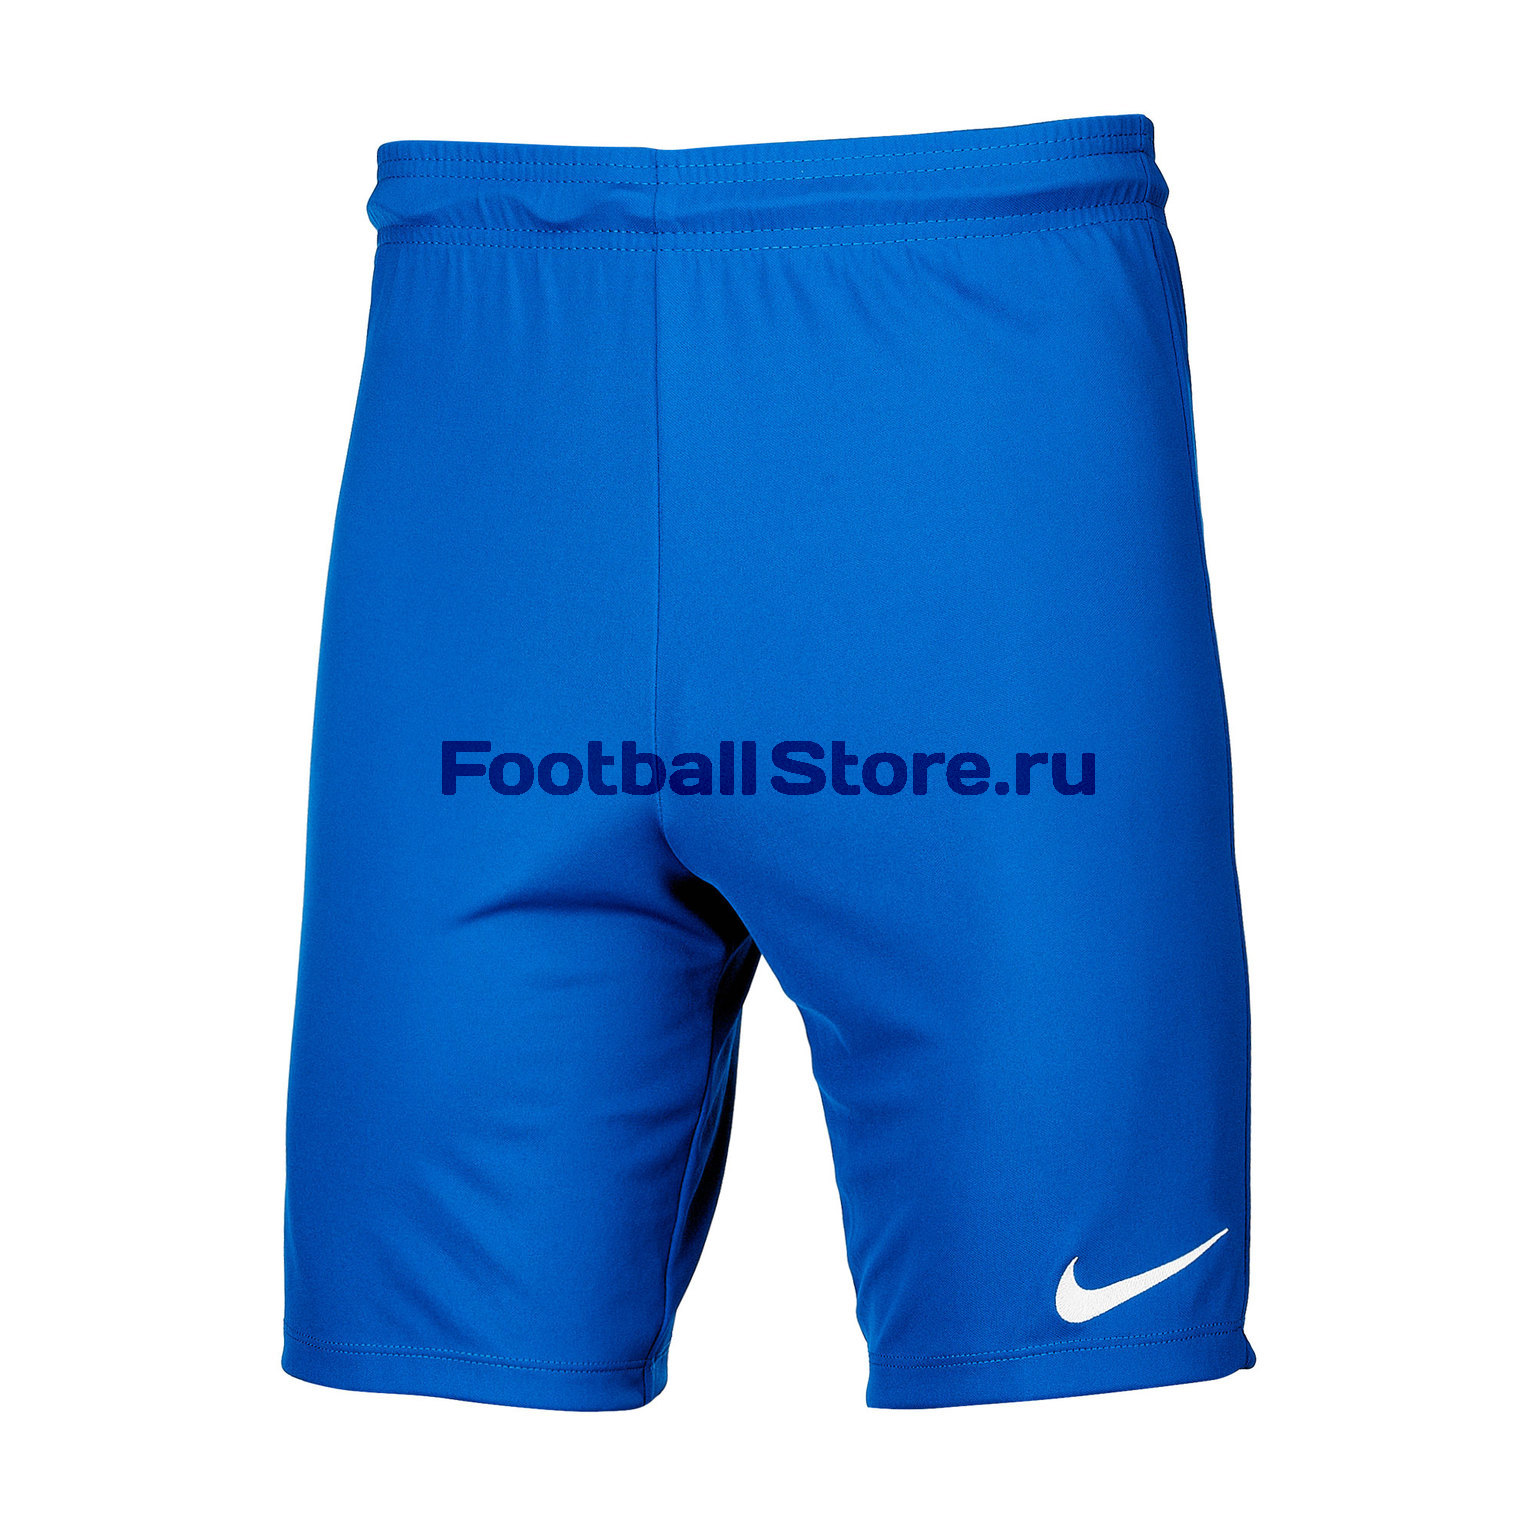 Шорты Nike Park II KNIT Short NB 725887-463 шорты nike игровые шорты nike league knit short nb 725881 702